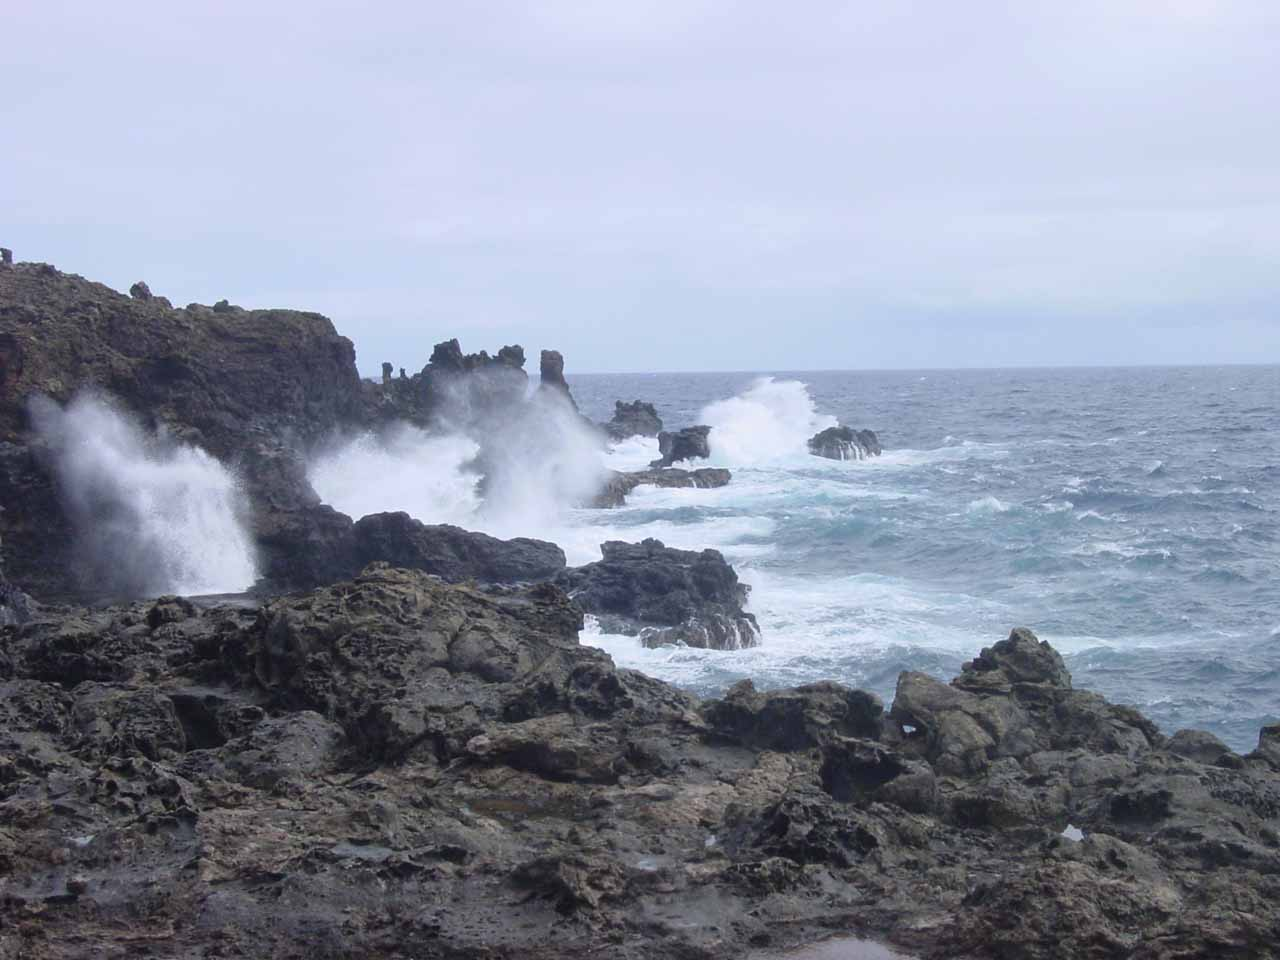 More blowholes set against the turbulent ocean